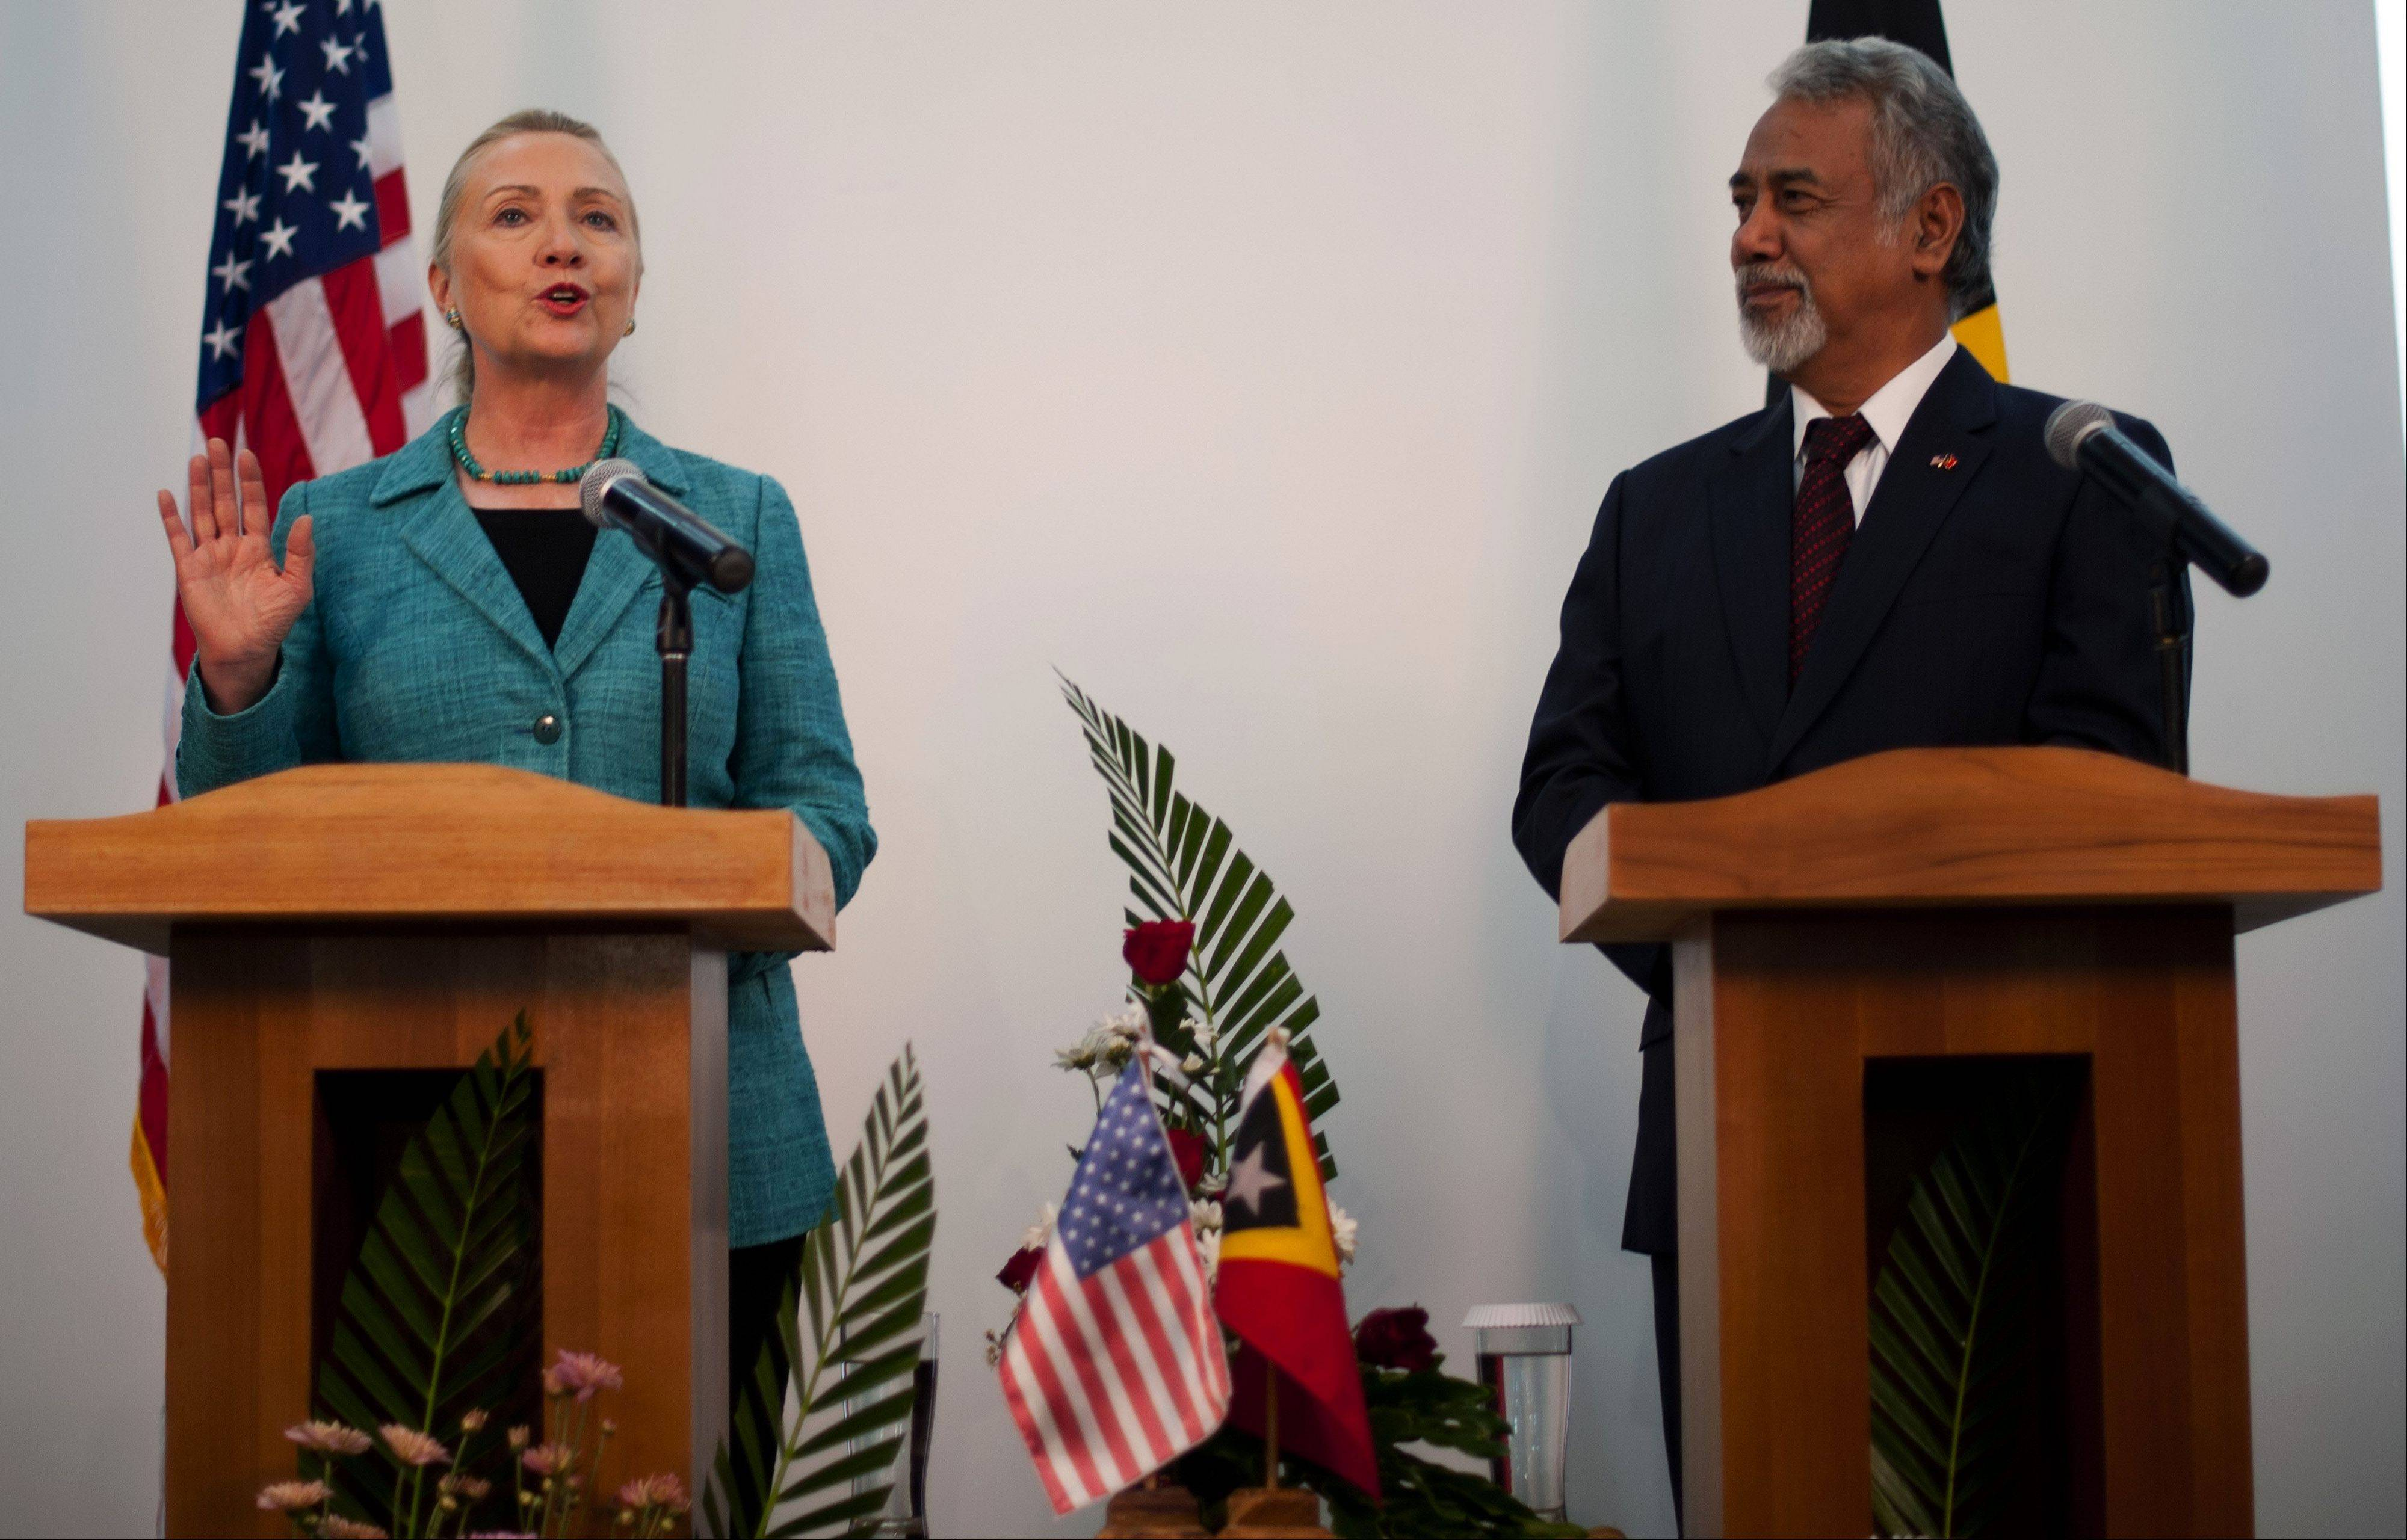 U.S. Secretary of State Hillary Rodham Clinton, left, speaks as East Timor Prime Minister Xanana Gusmao looks on during a joint press conference at the Government Palace in Dili, East Timor, Thursday. Clinton is in East Timor to offer the small half-island nation support as it ends its reliance on international peacekeepers.